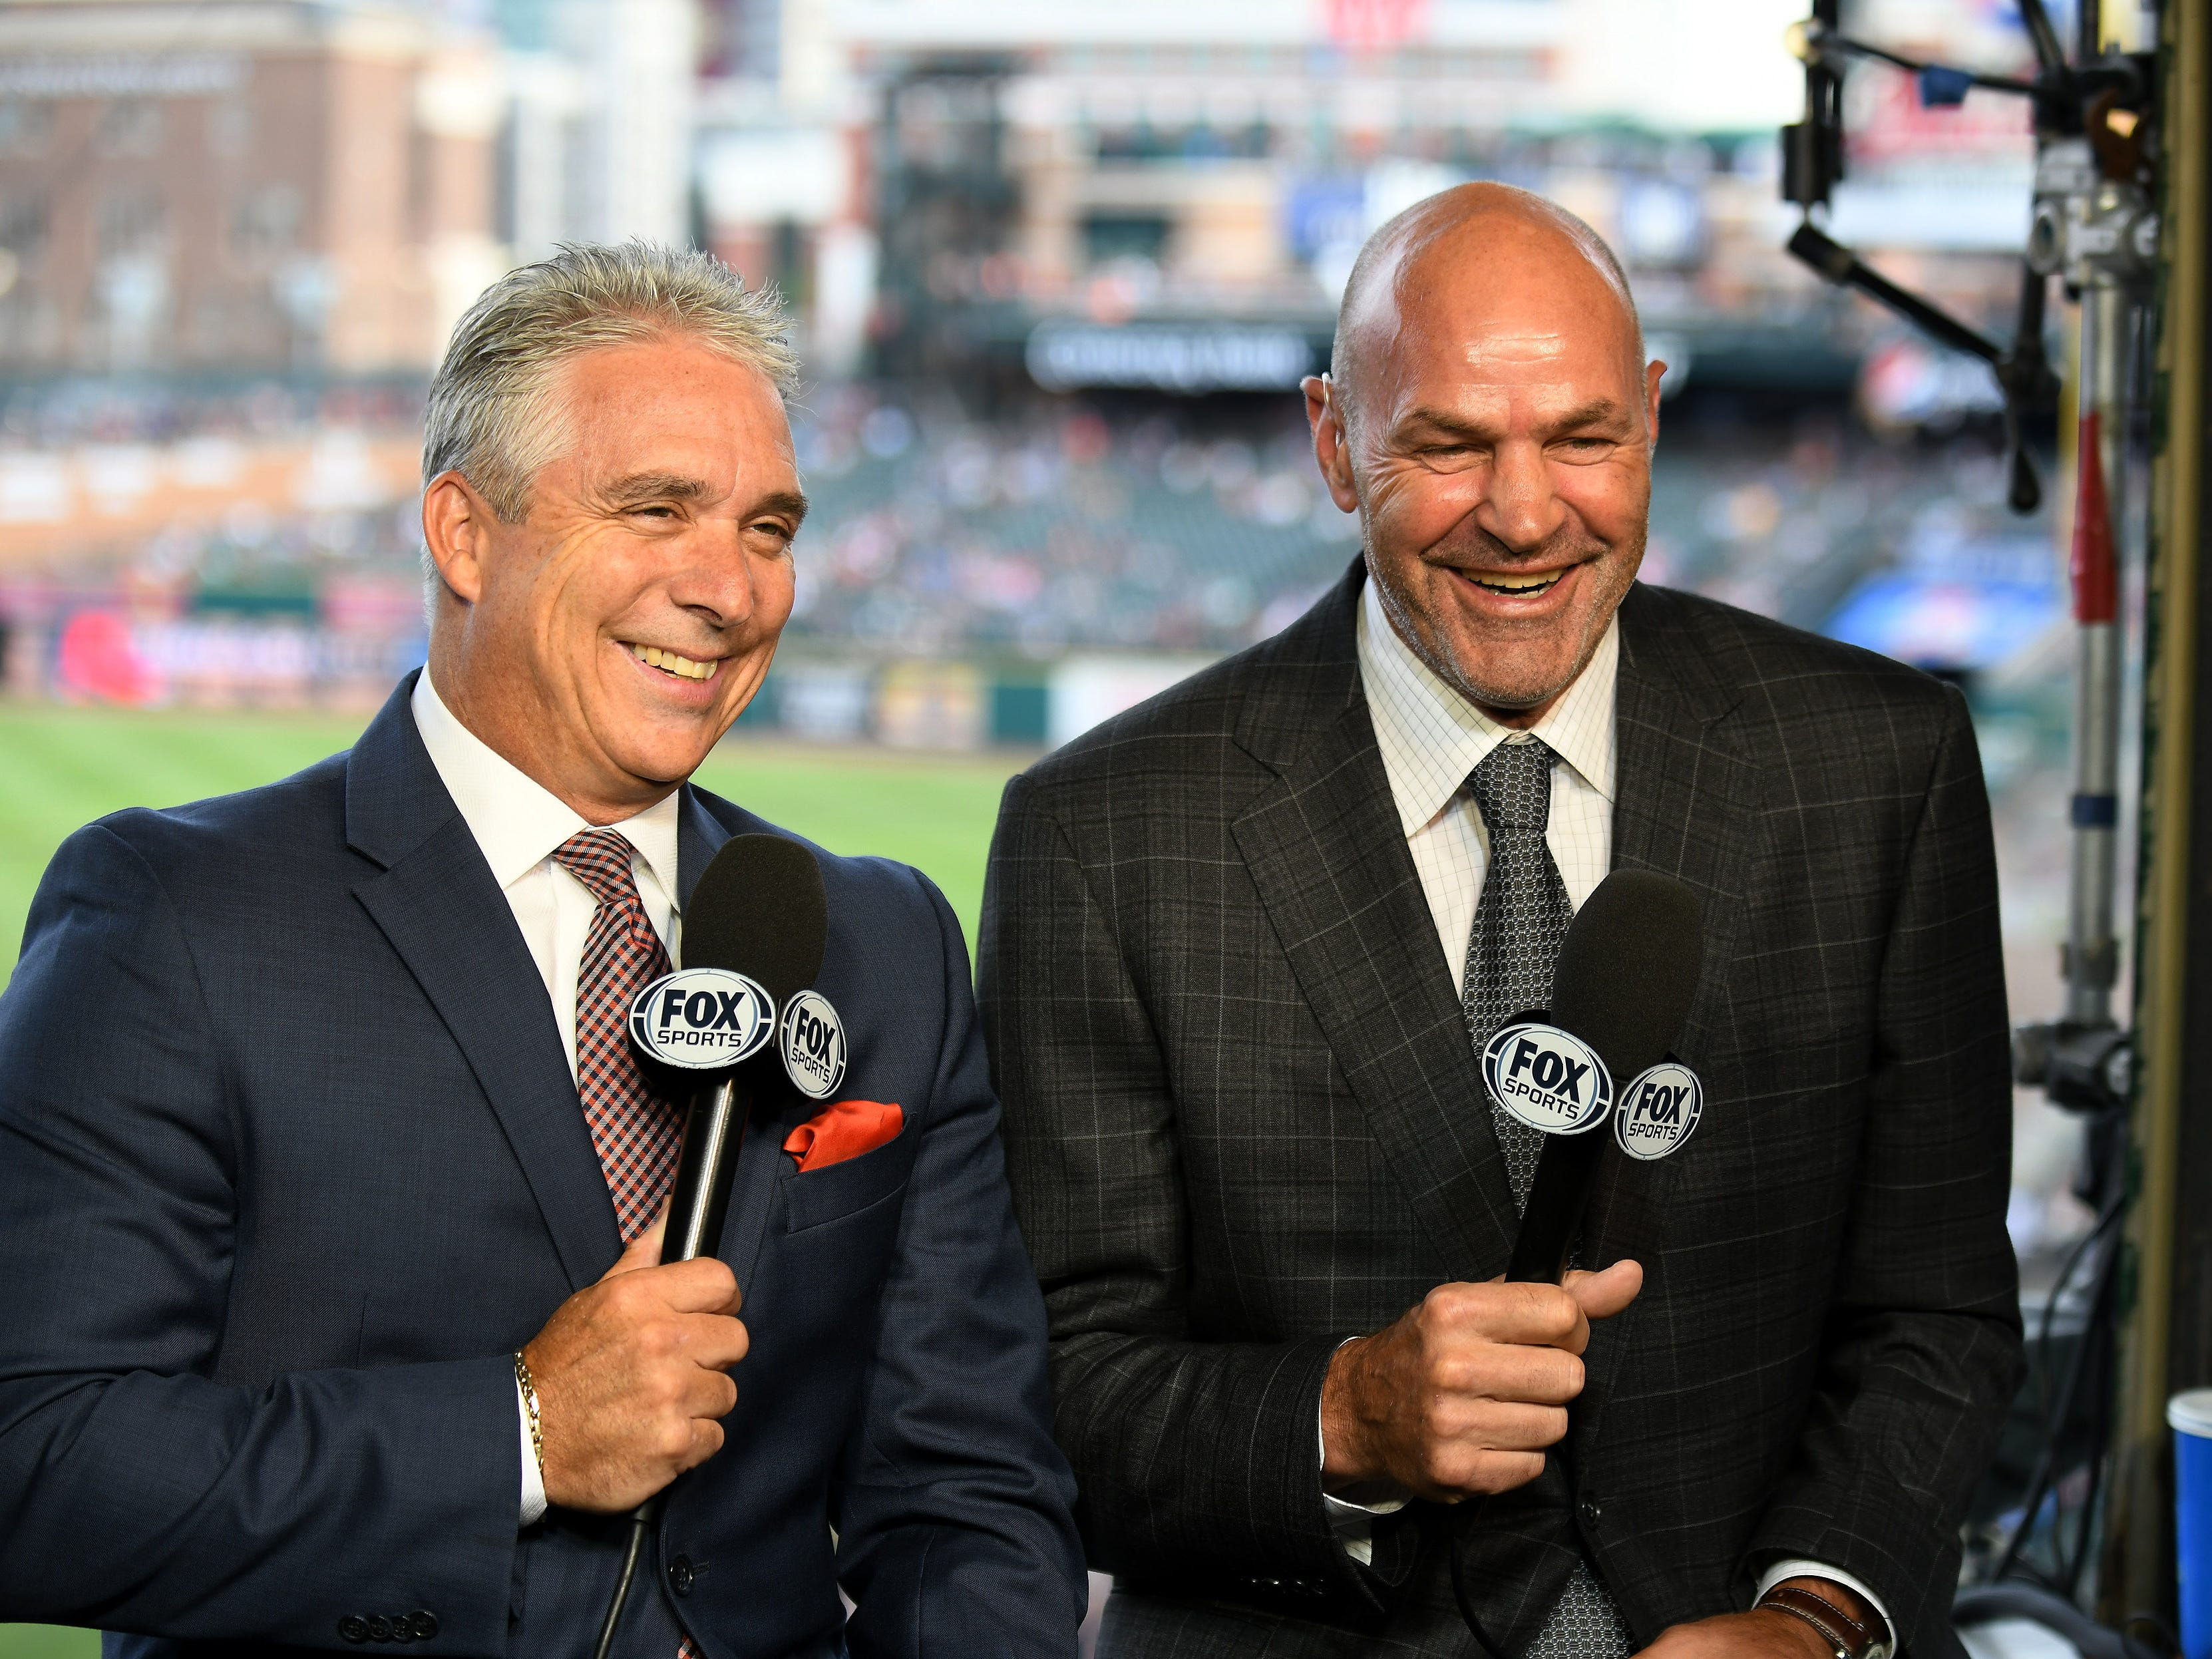 Kirk Gibson has some fun with fellow Fox Sports Detroit broadcaster Matt Shepard during a segment of a pregame show in the FSD booth at Comerica Park. Gibson shows up at the ballpark four hours before the broadcast, taking notes during Ron Gardenhire's press sessions.